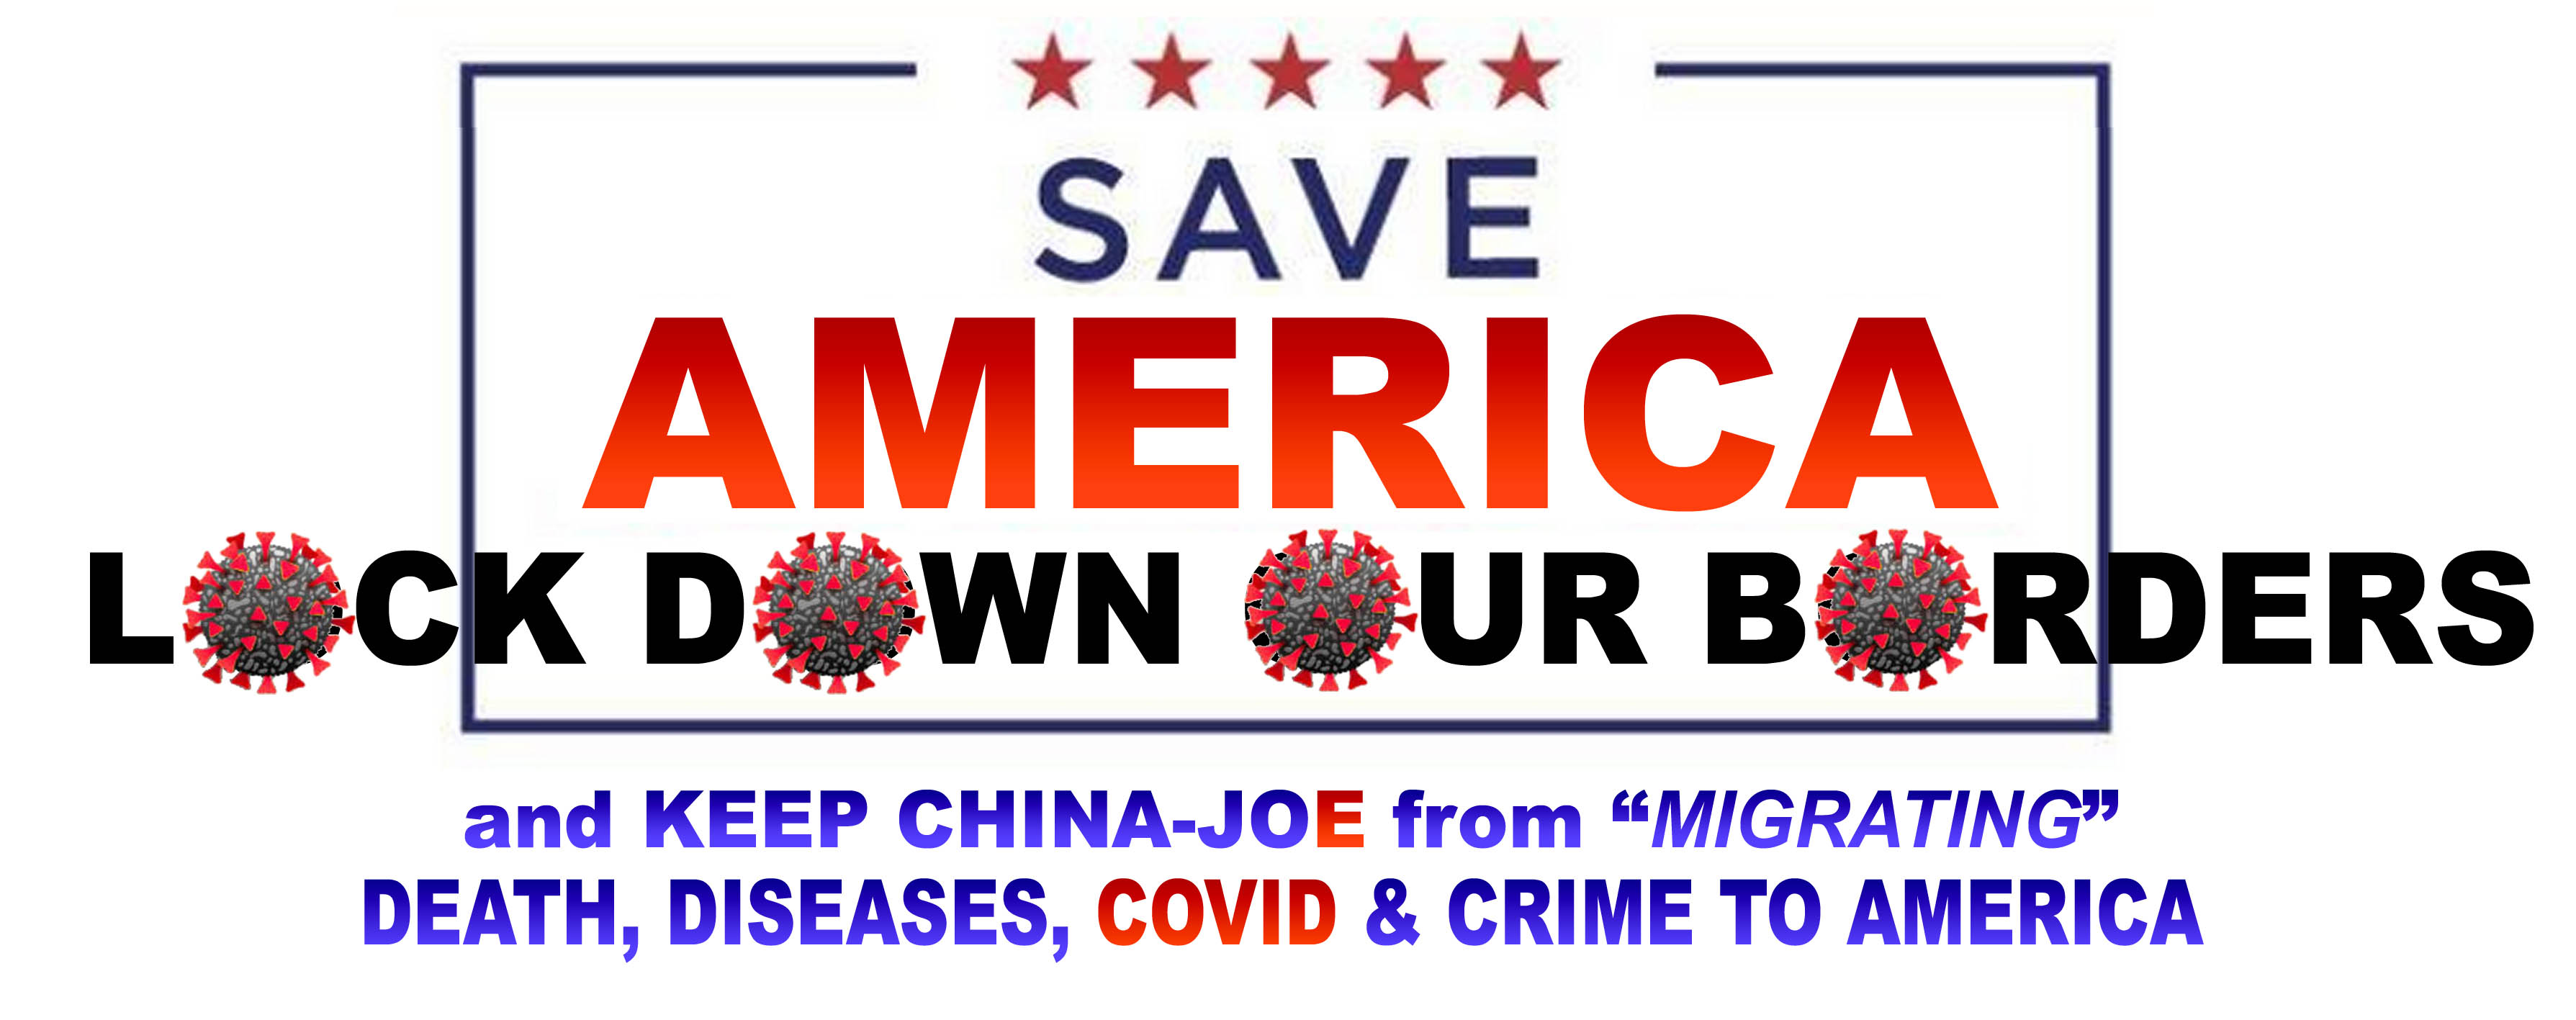 SAVE AMERICA - LOCK DOWN OUR BORDERS - AND KEEP JOE FROM MIGRATING COVID-DEATH-DISEASES TO AME...jpg